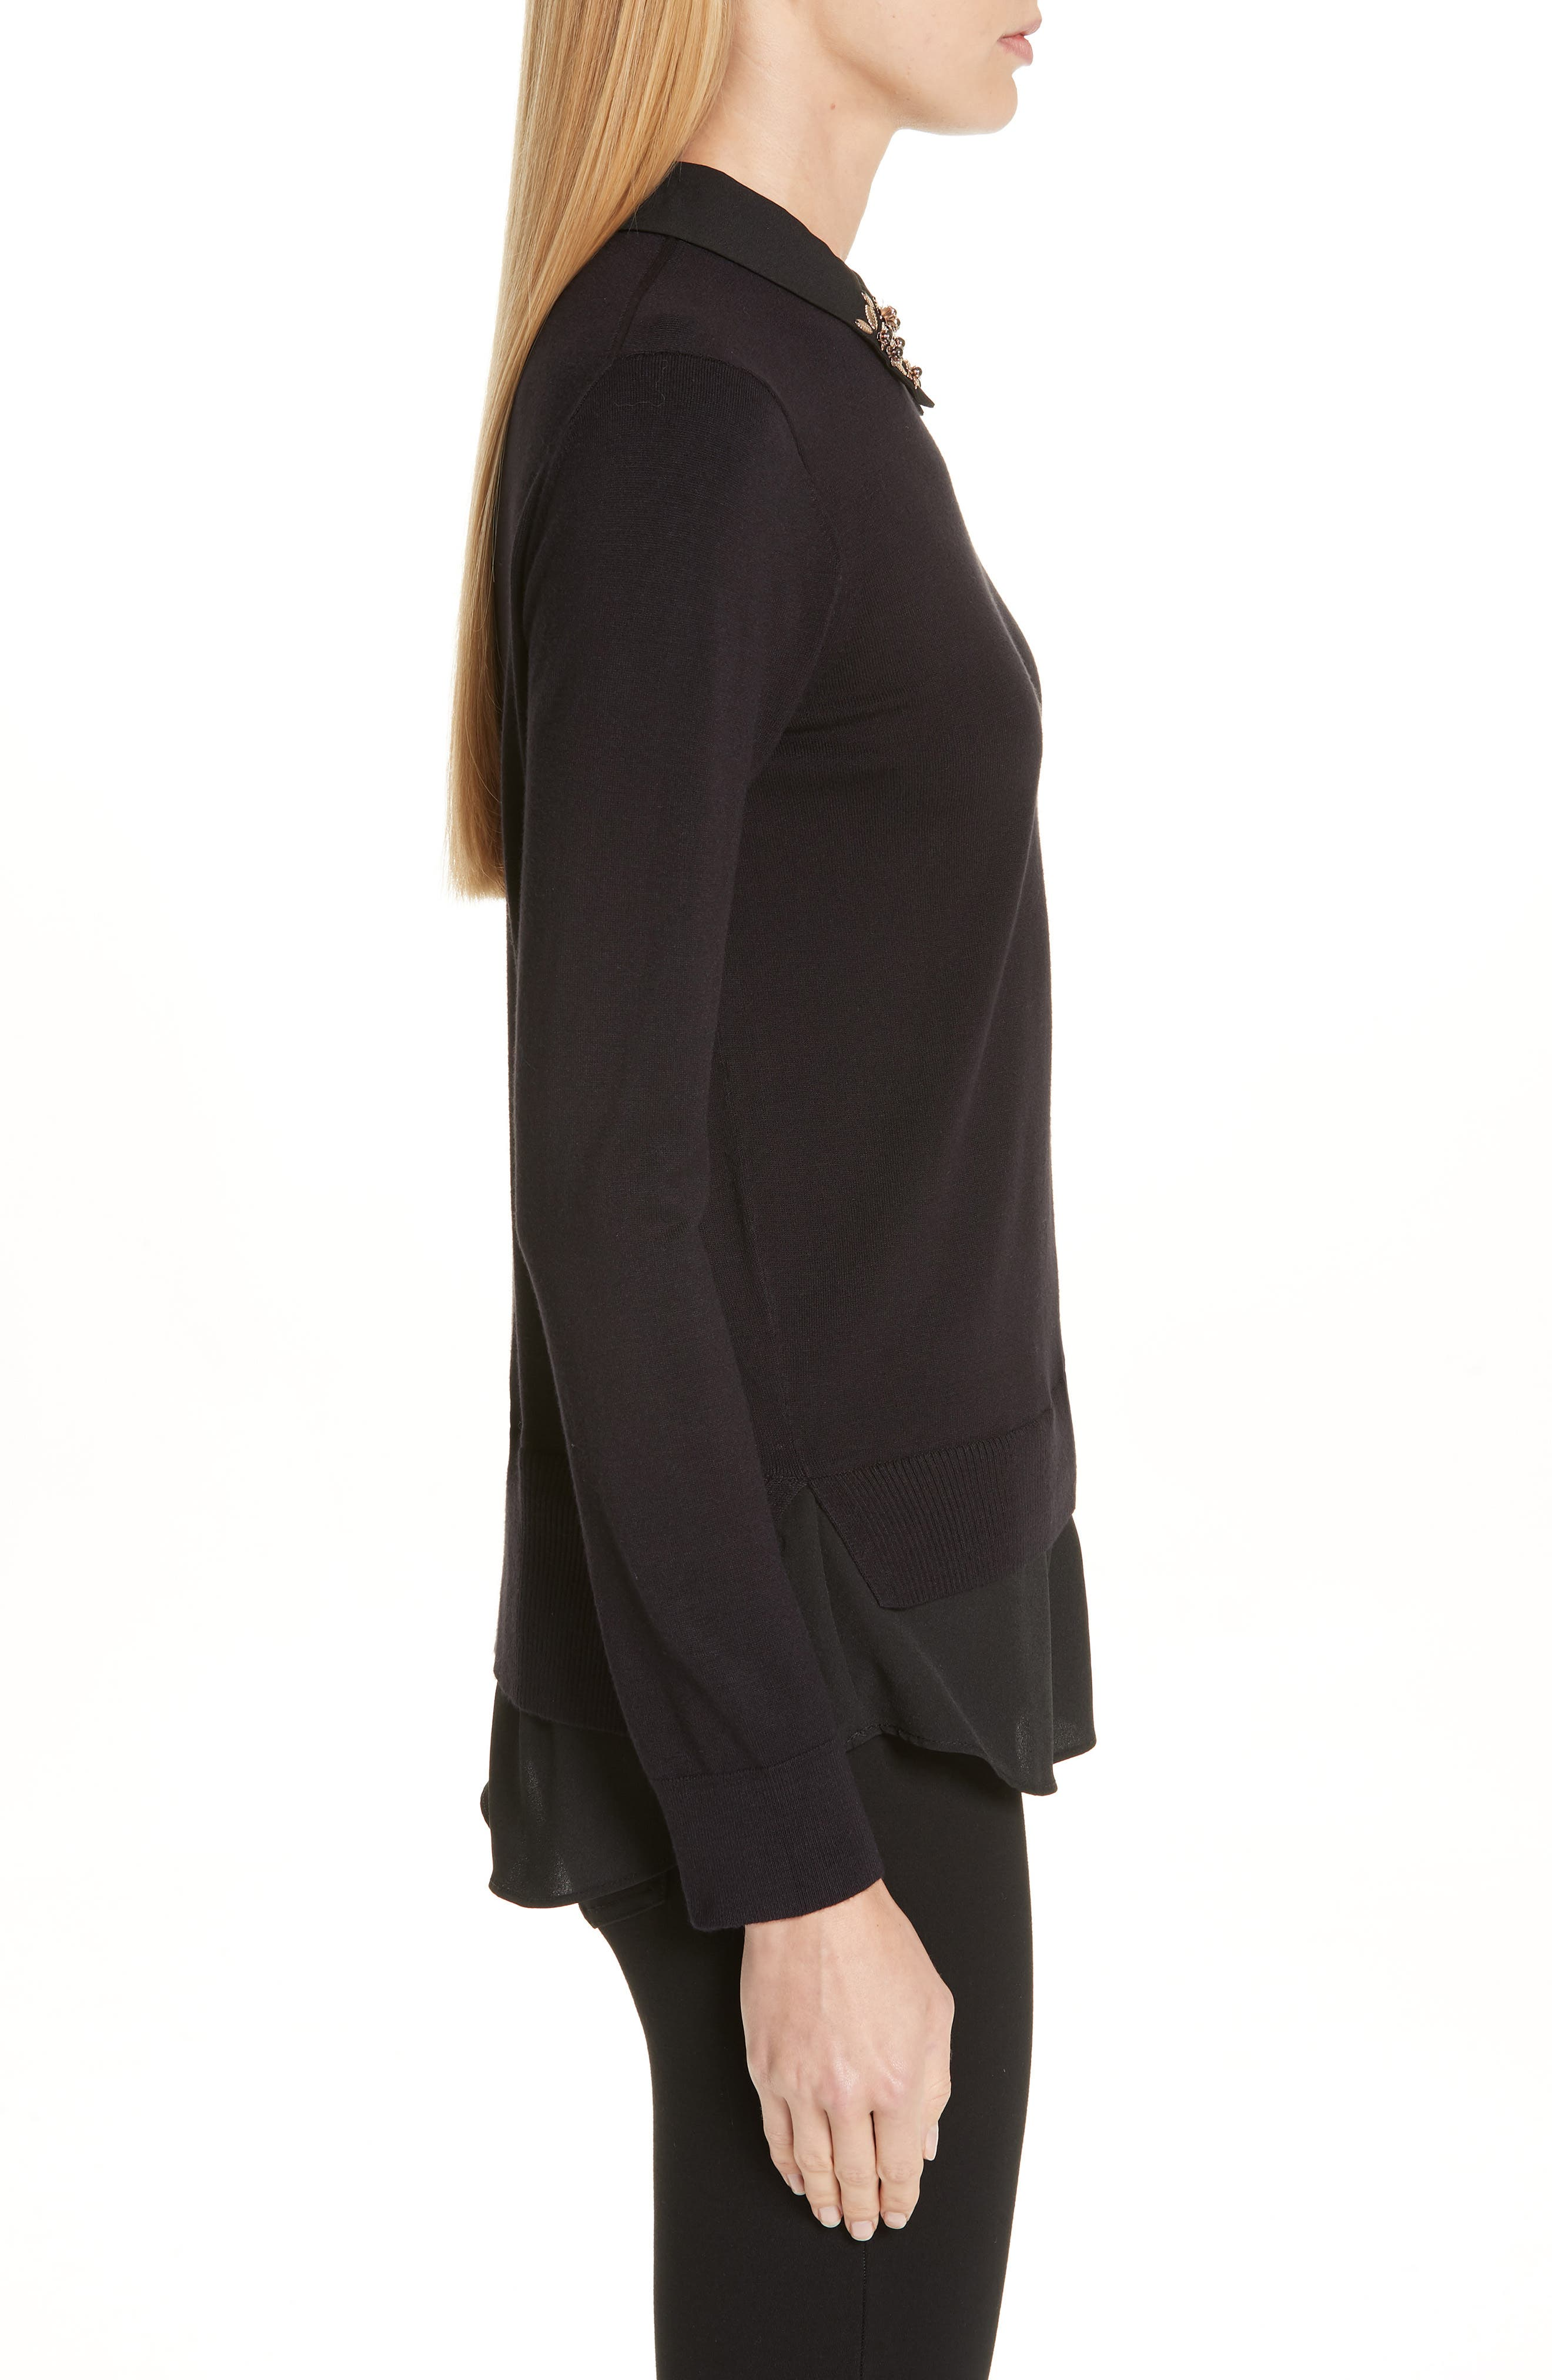 Moliiee Embroidered Collar Sweater,                             Alternate thumbnail 3, color,                             BLACK